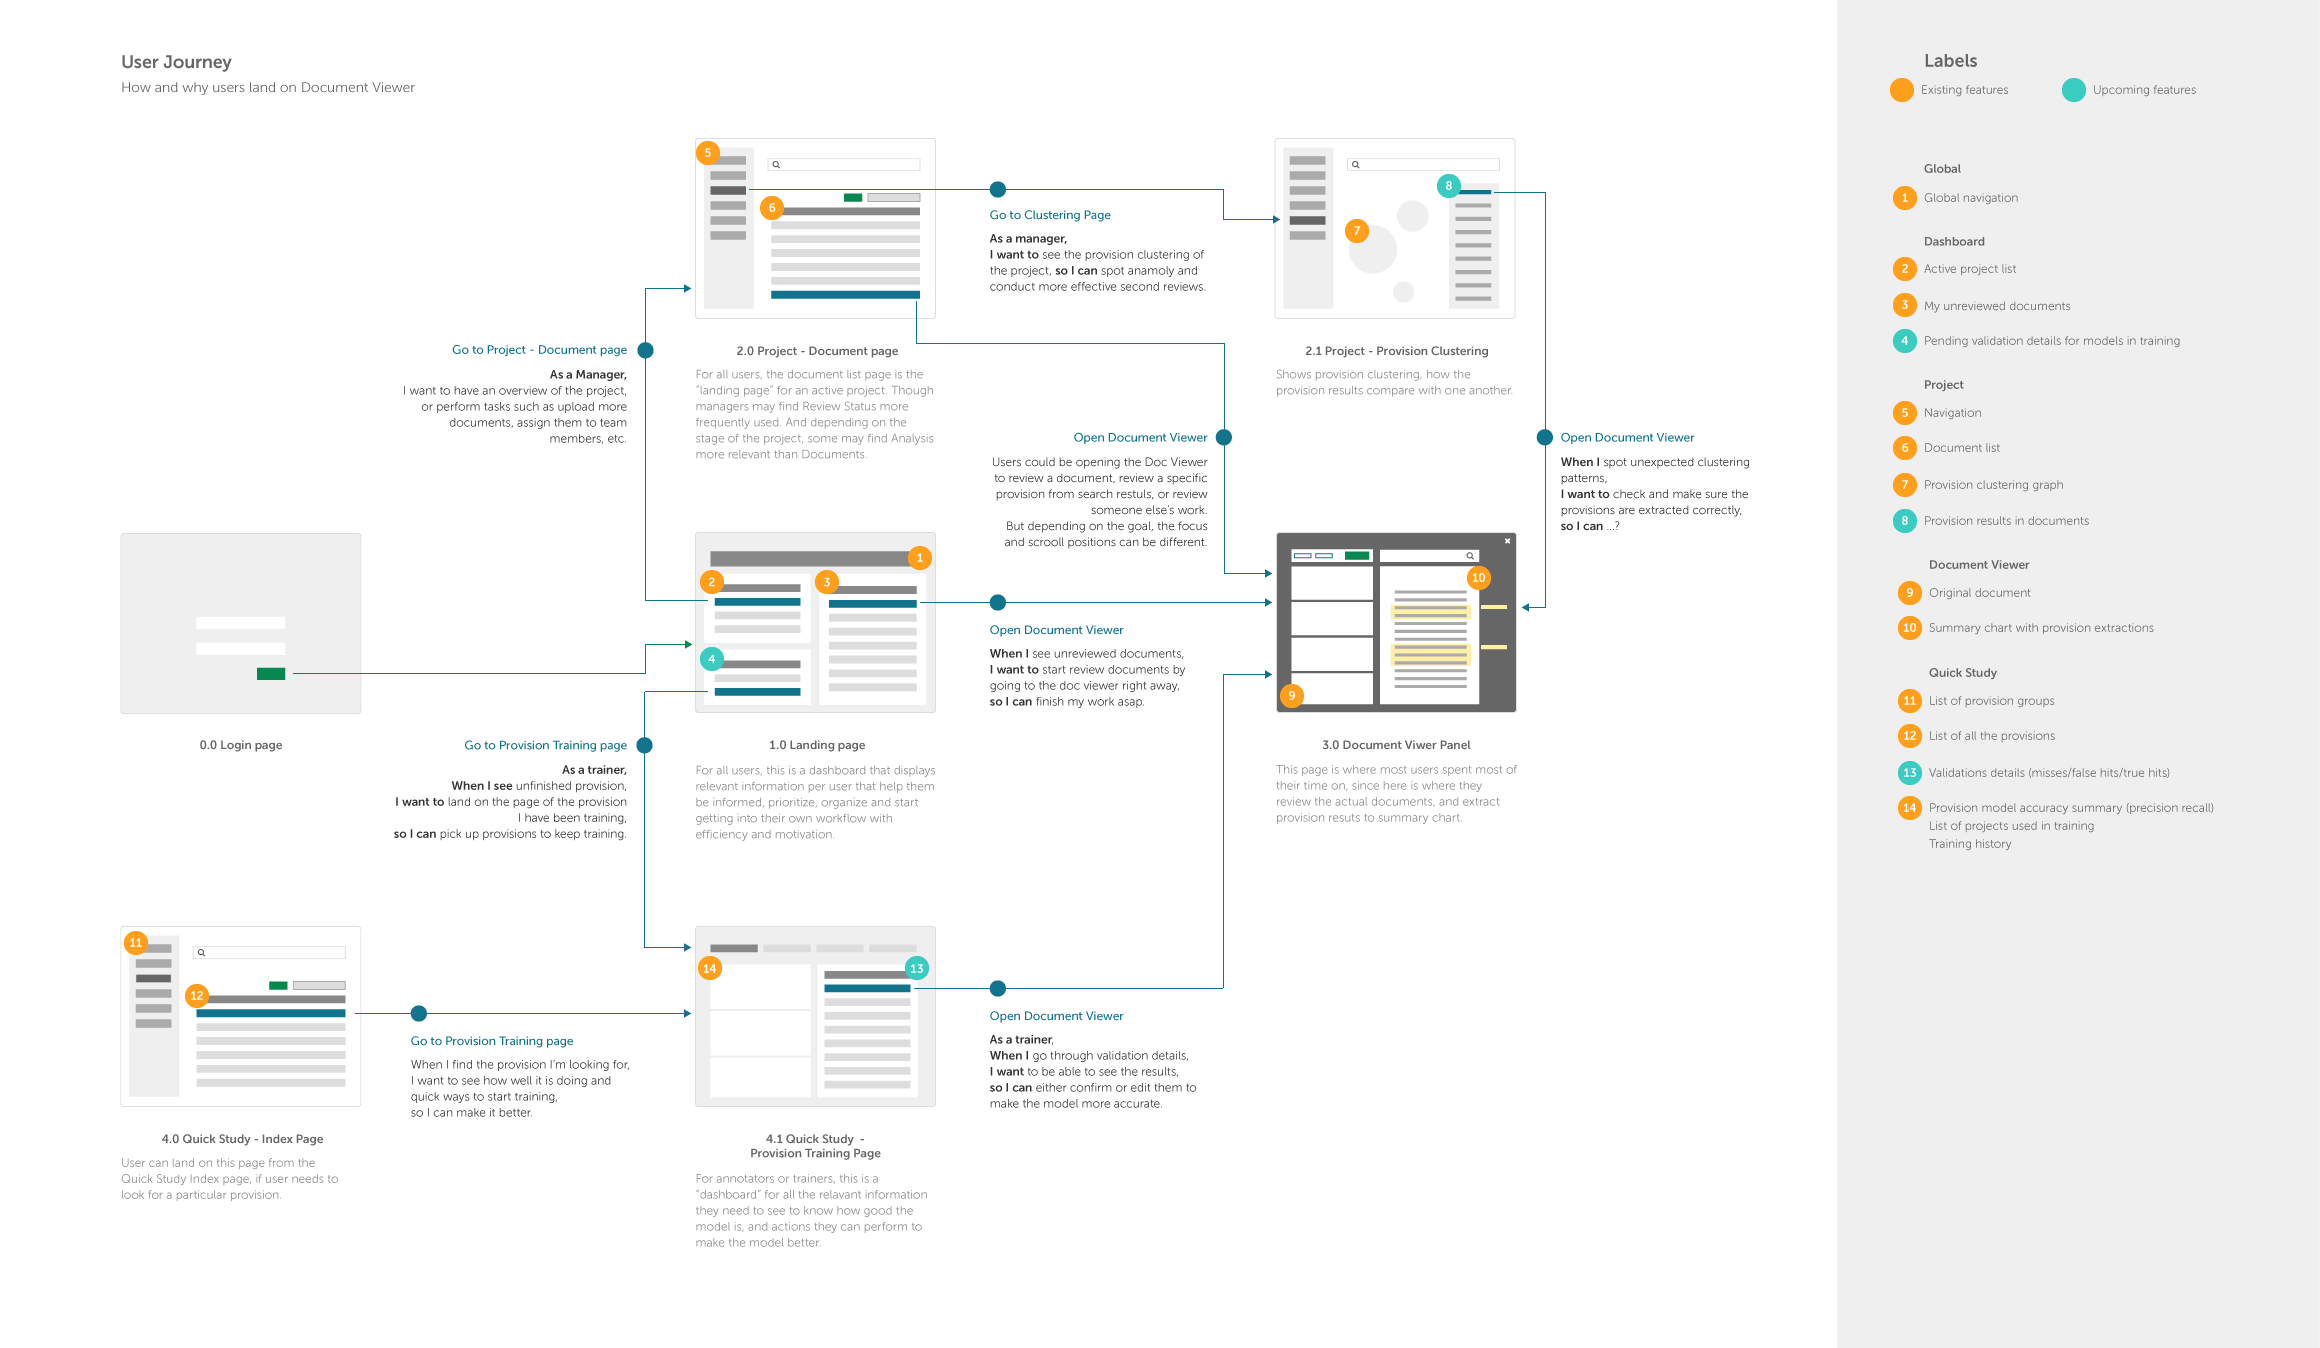 The paths users may take to land on document viewer according to their roles, based on the navigation of Kira by the time.